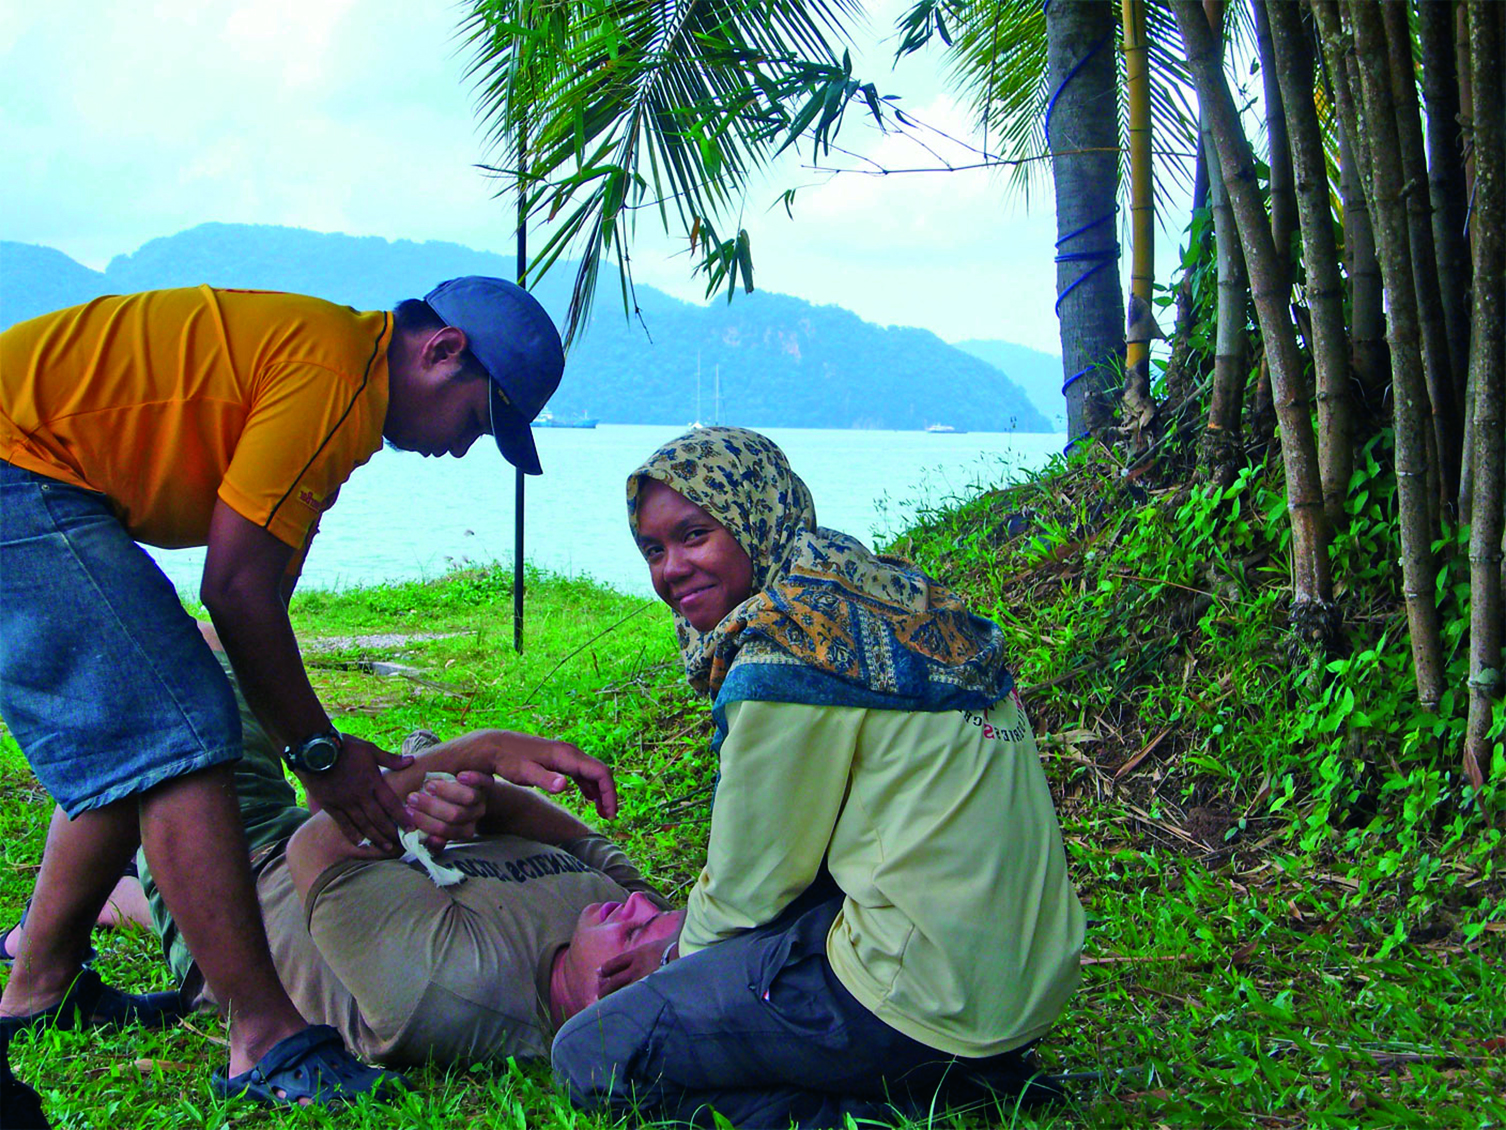 Woman wearing a head scarf and a man practice patient care on a NOLS wilderness medicine course